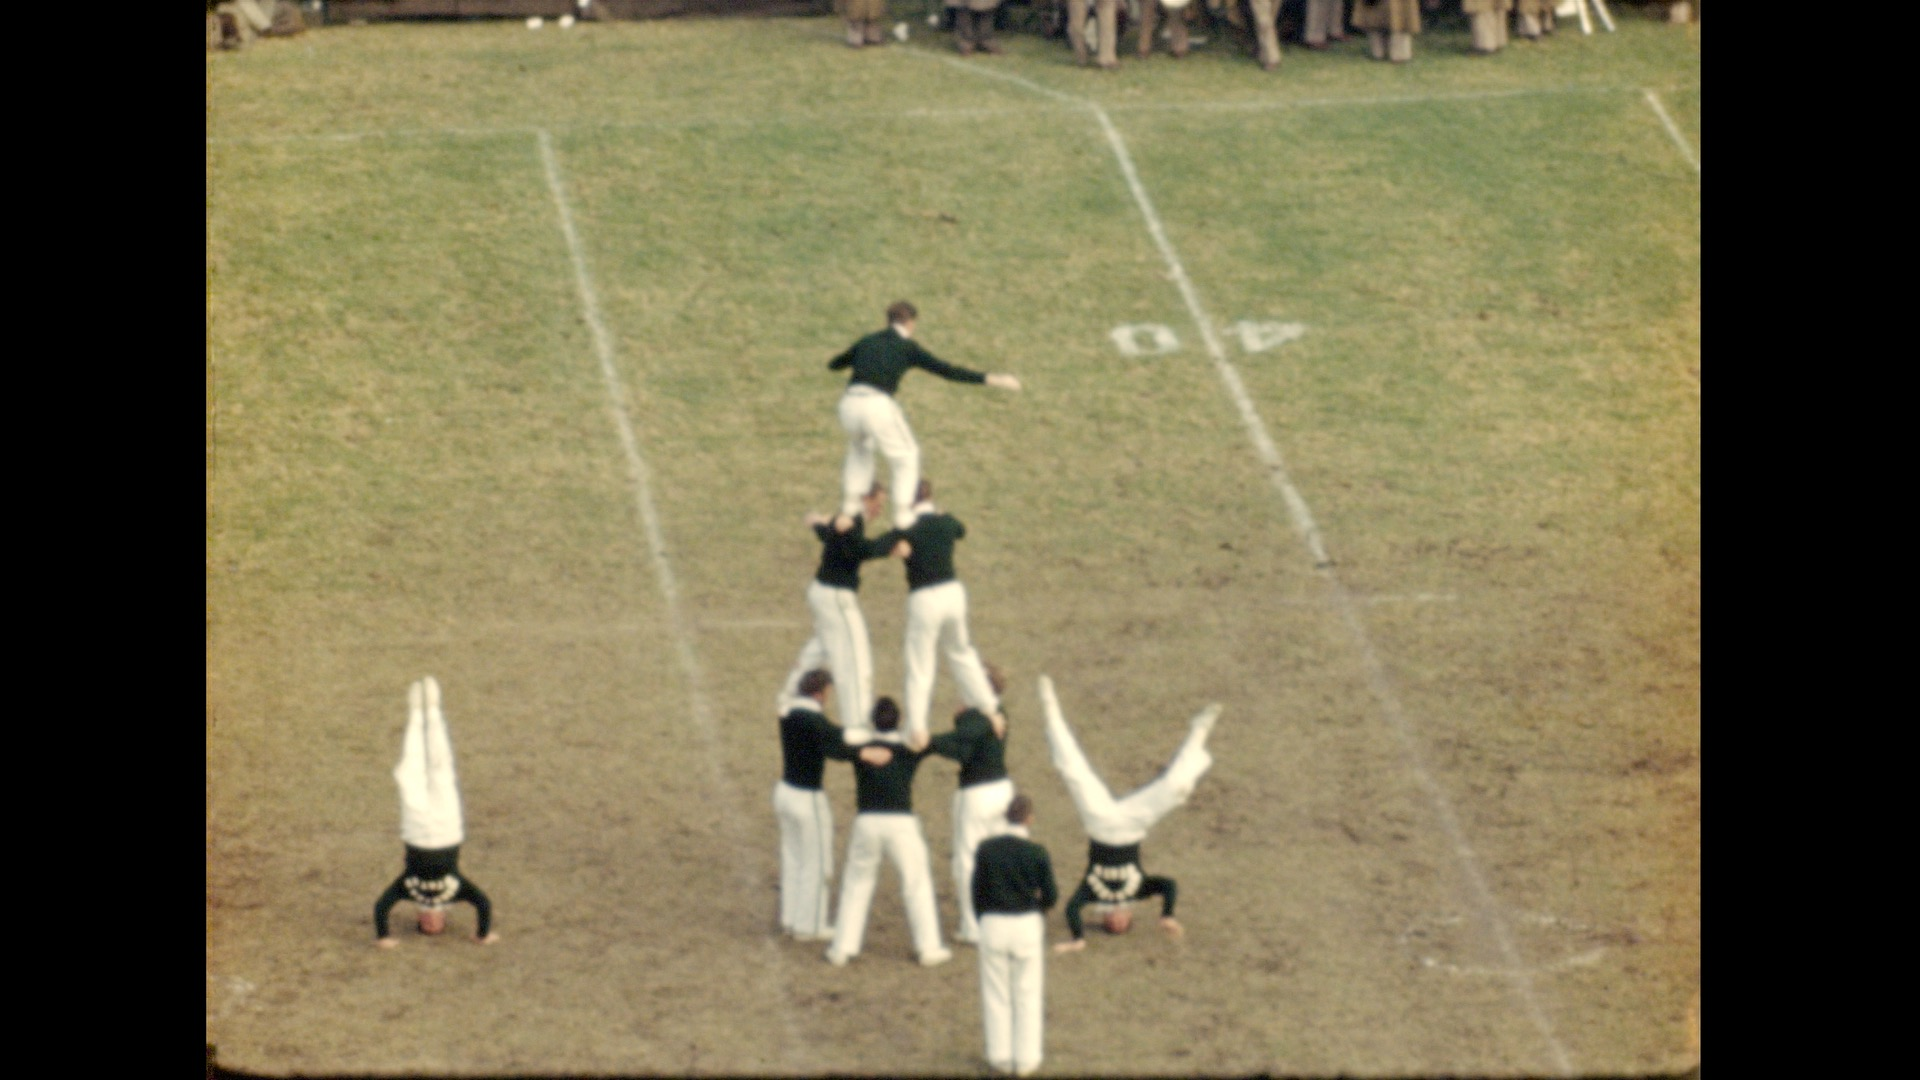 MSC Marching Band, 1949 (part 2 of 2)